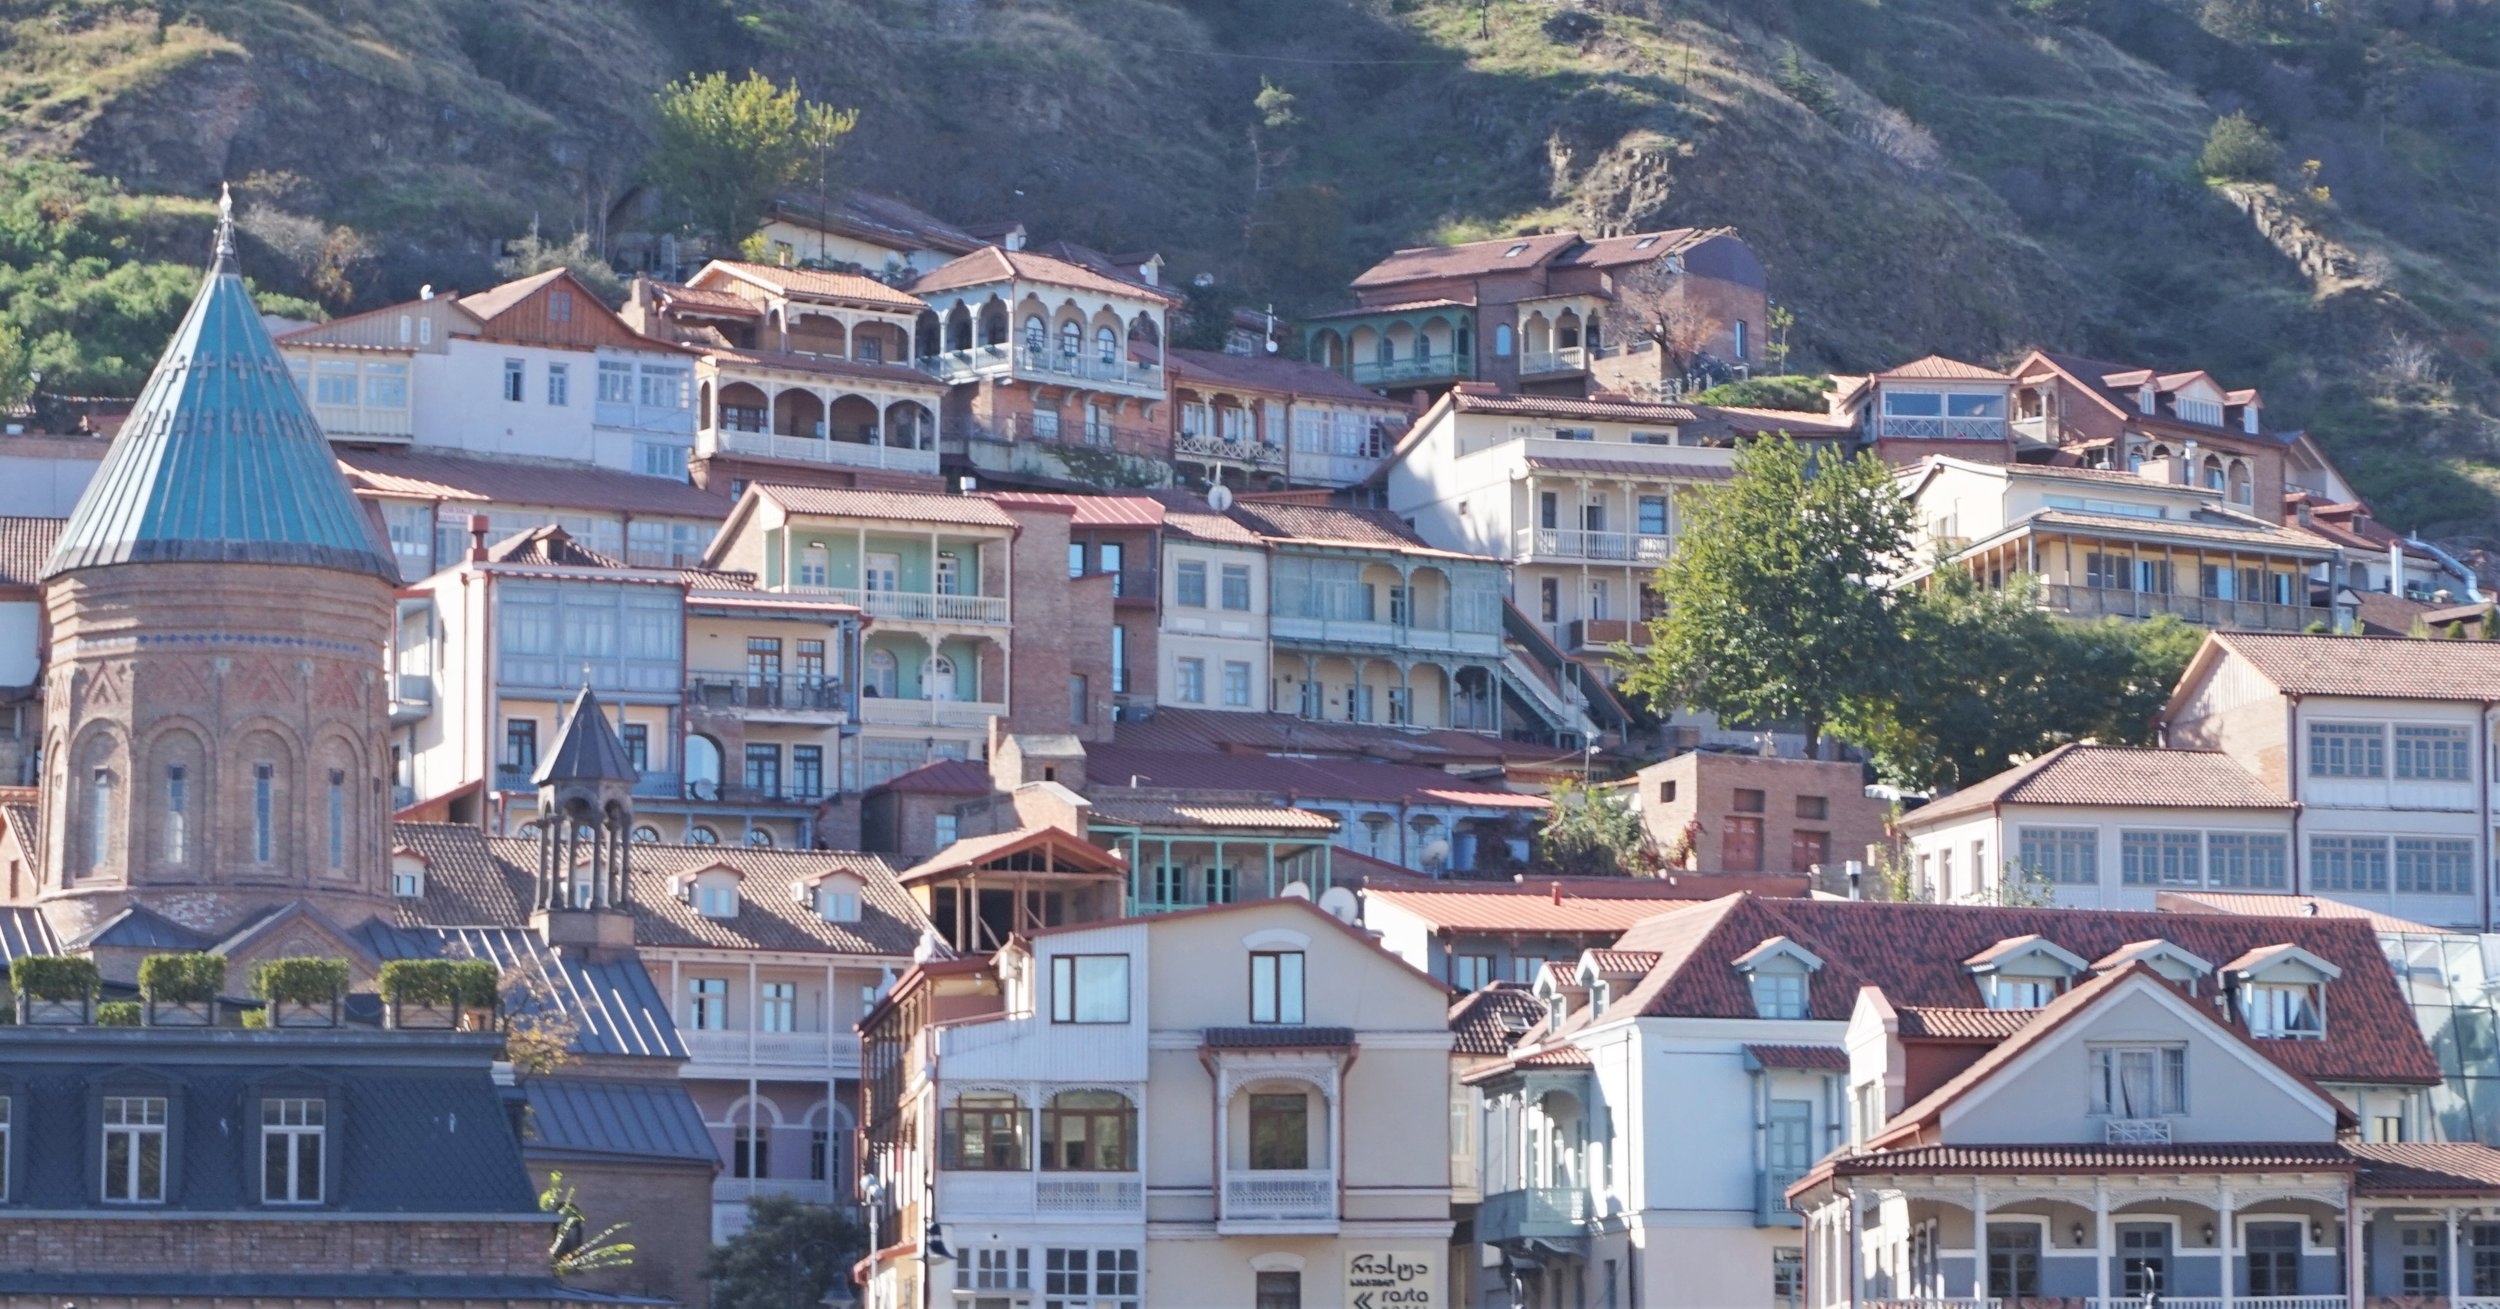 Tbilisi old town is one of the best places to stay in Tbilisi. There are many hotels and the best hostels to stay in Tbilisi.